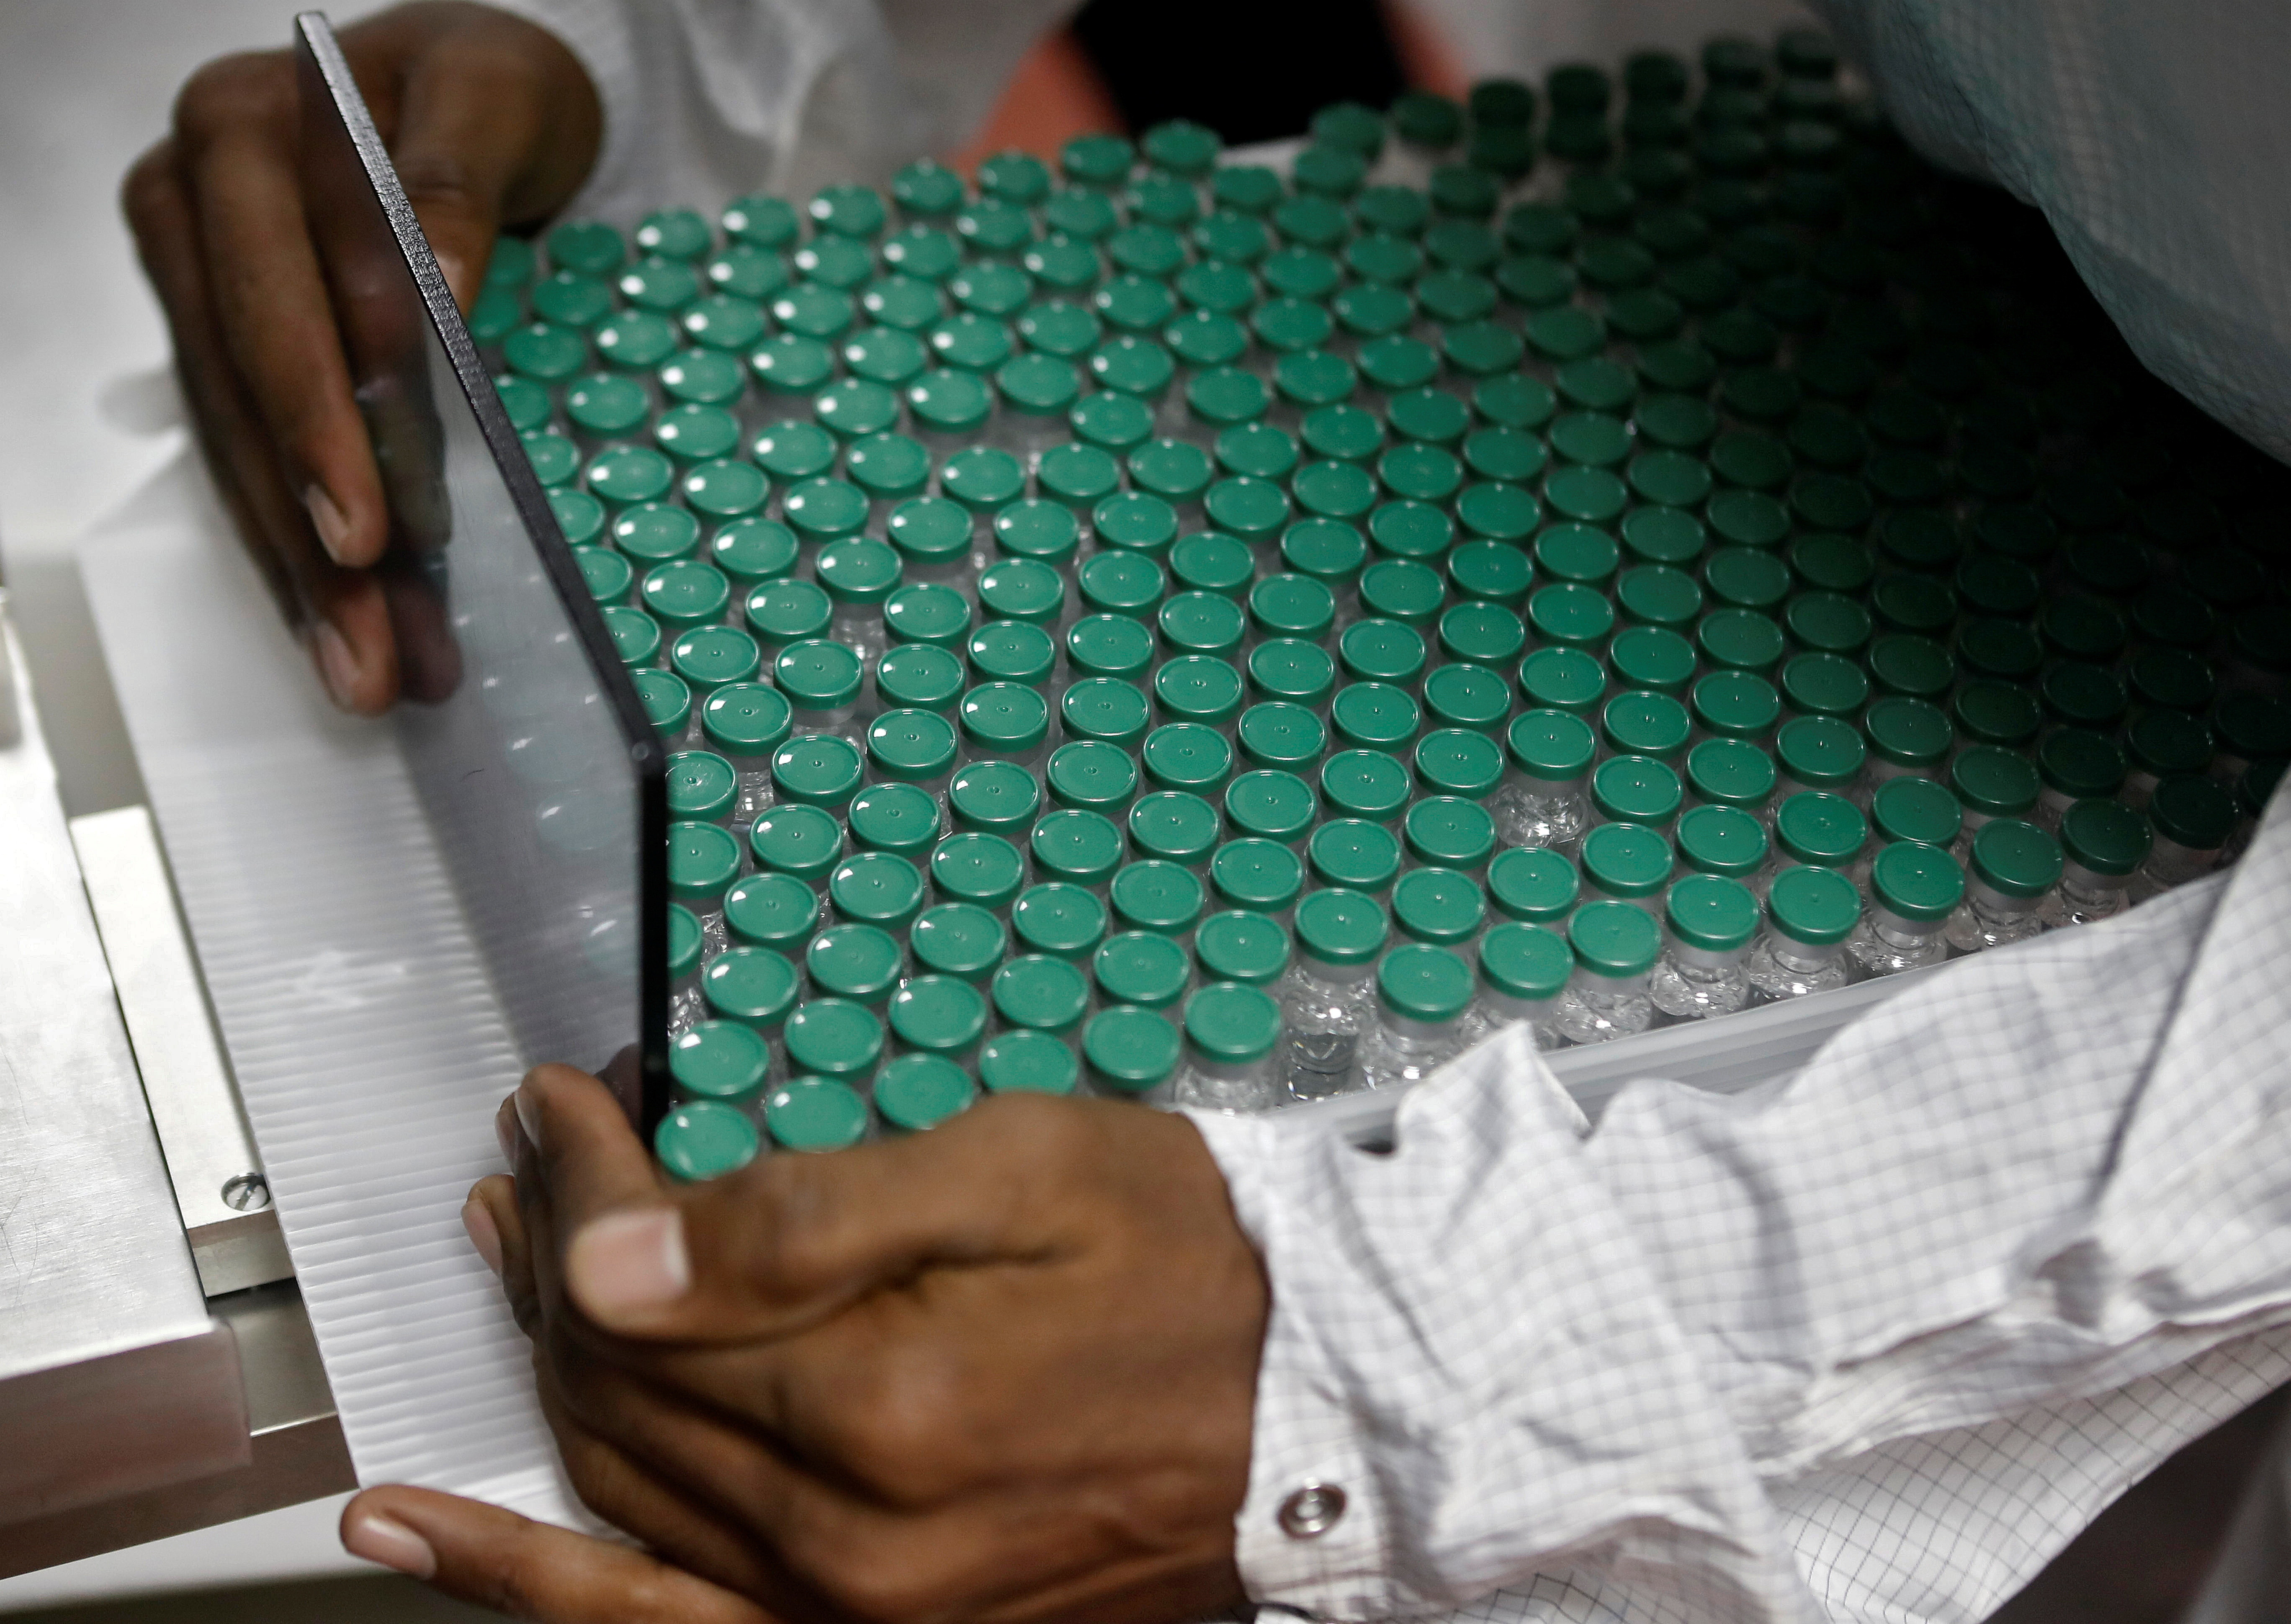 An employee in personal protective equipment (PPE) removes vials of AstraZeneca's COVISHIELD, coronavirus disease (COVID-19) vaccine from a visual inspection machine inside a lab at Serum Institute of India, in Pune, India, November 30, 2020. Picture taken November 30, 2020. REUTERS/Francis Mascarenhas - RC28EK9M111J